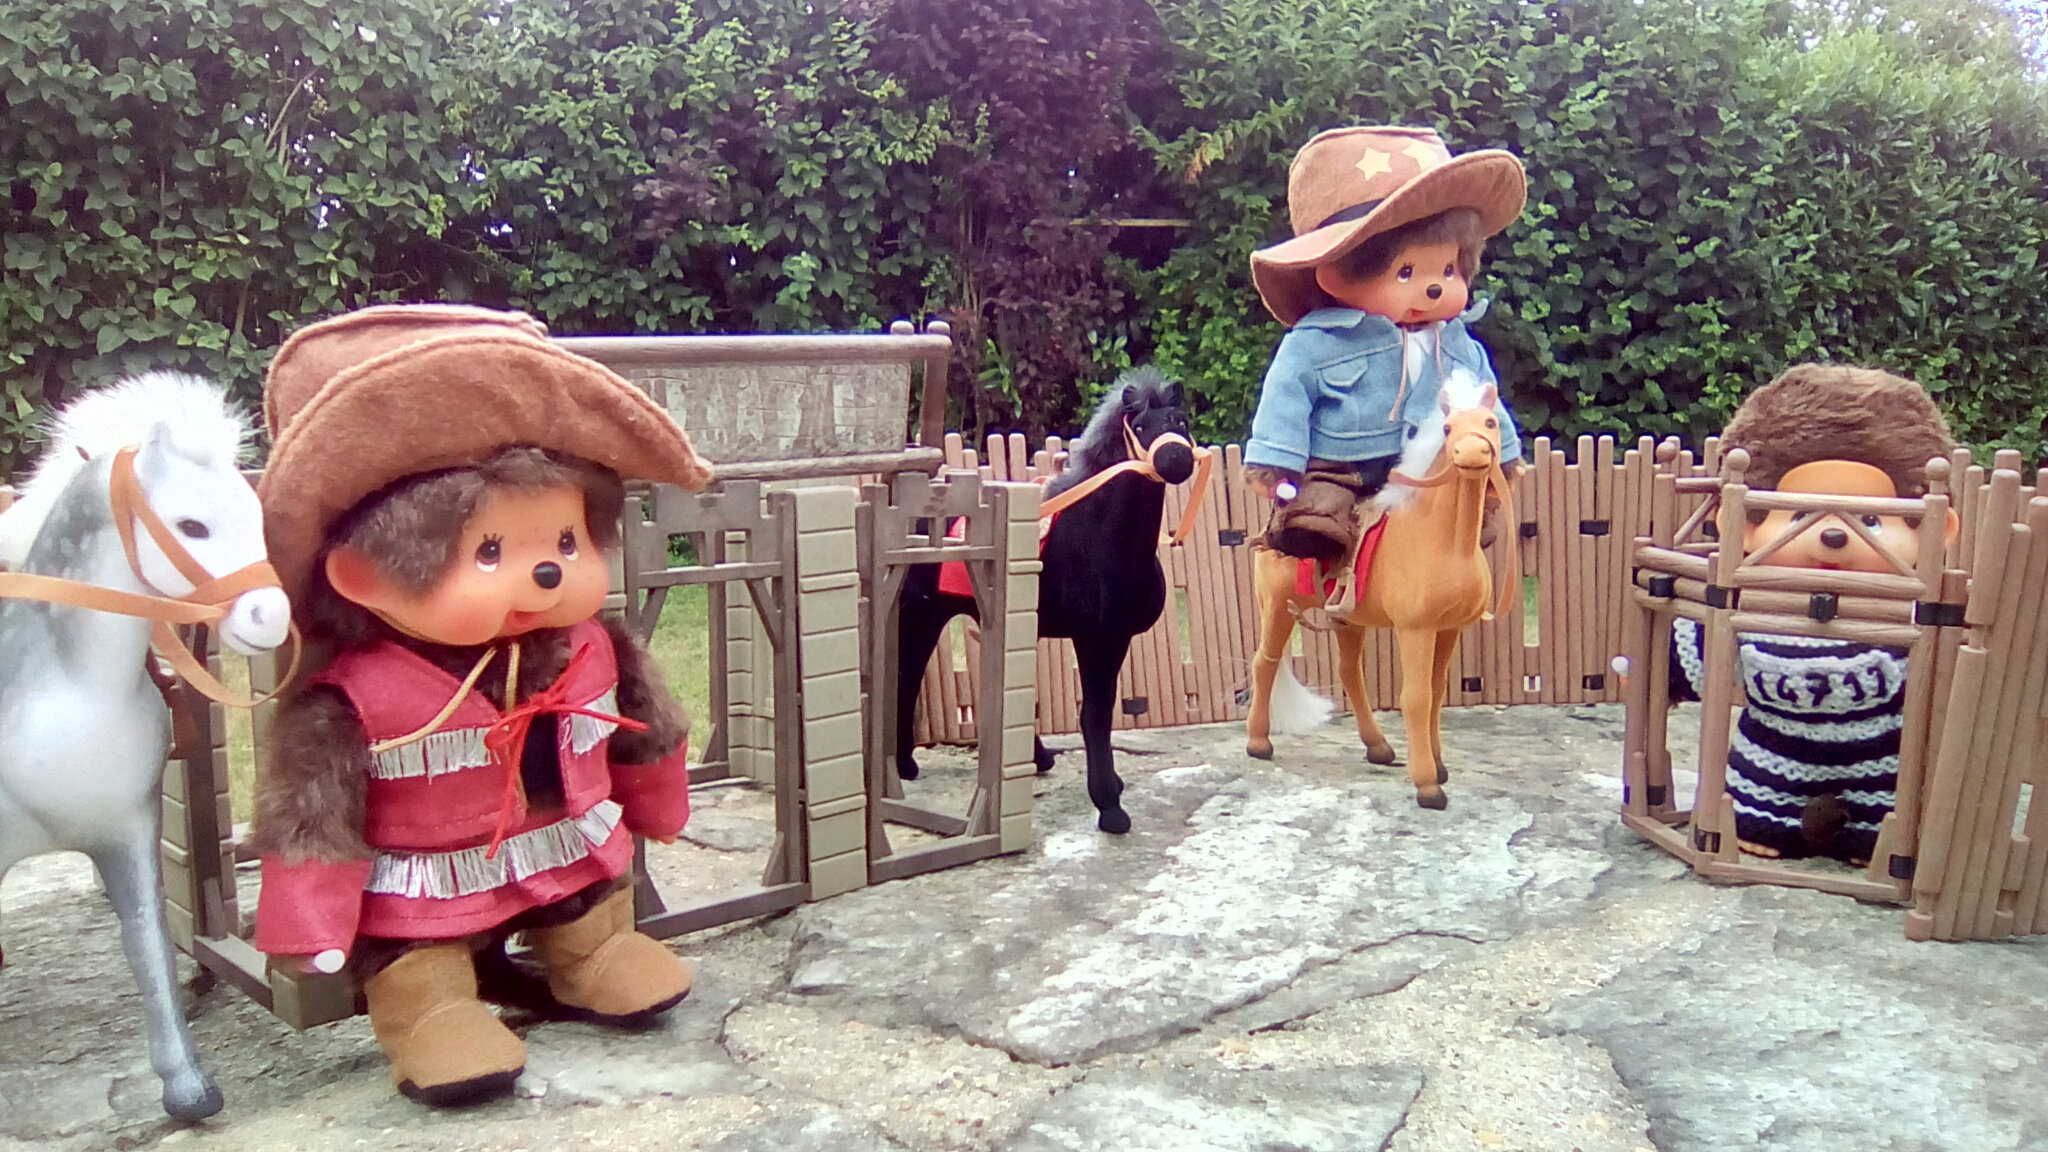 Les monchhichi cowboys du far west !